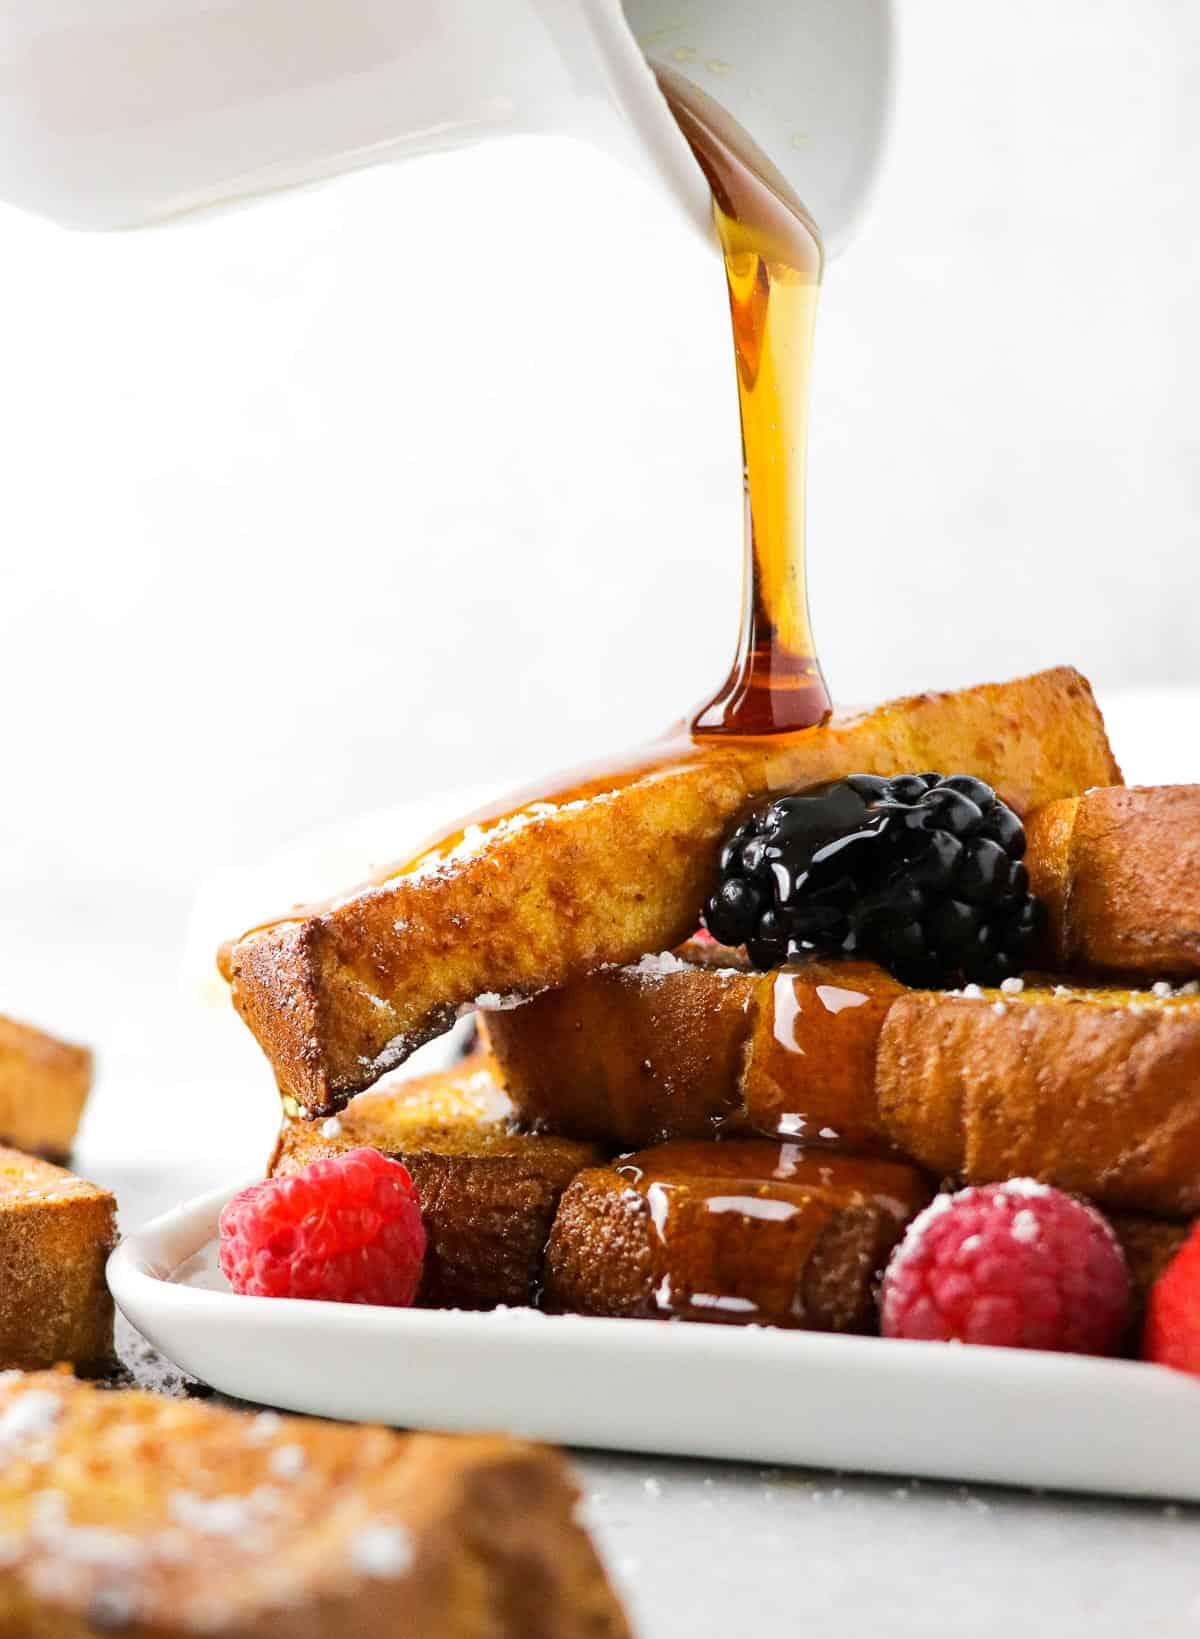 Pouring maple syrup on a plate of air fryer french toast sticks.